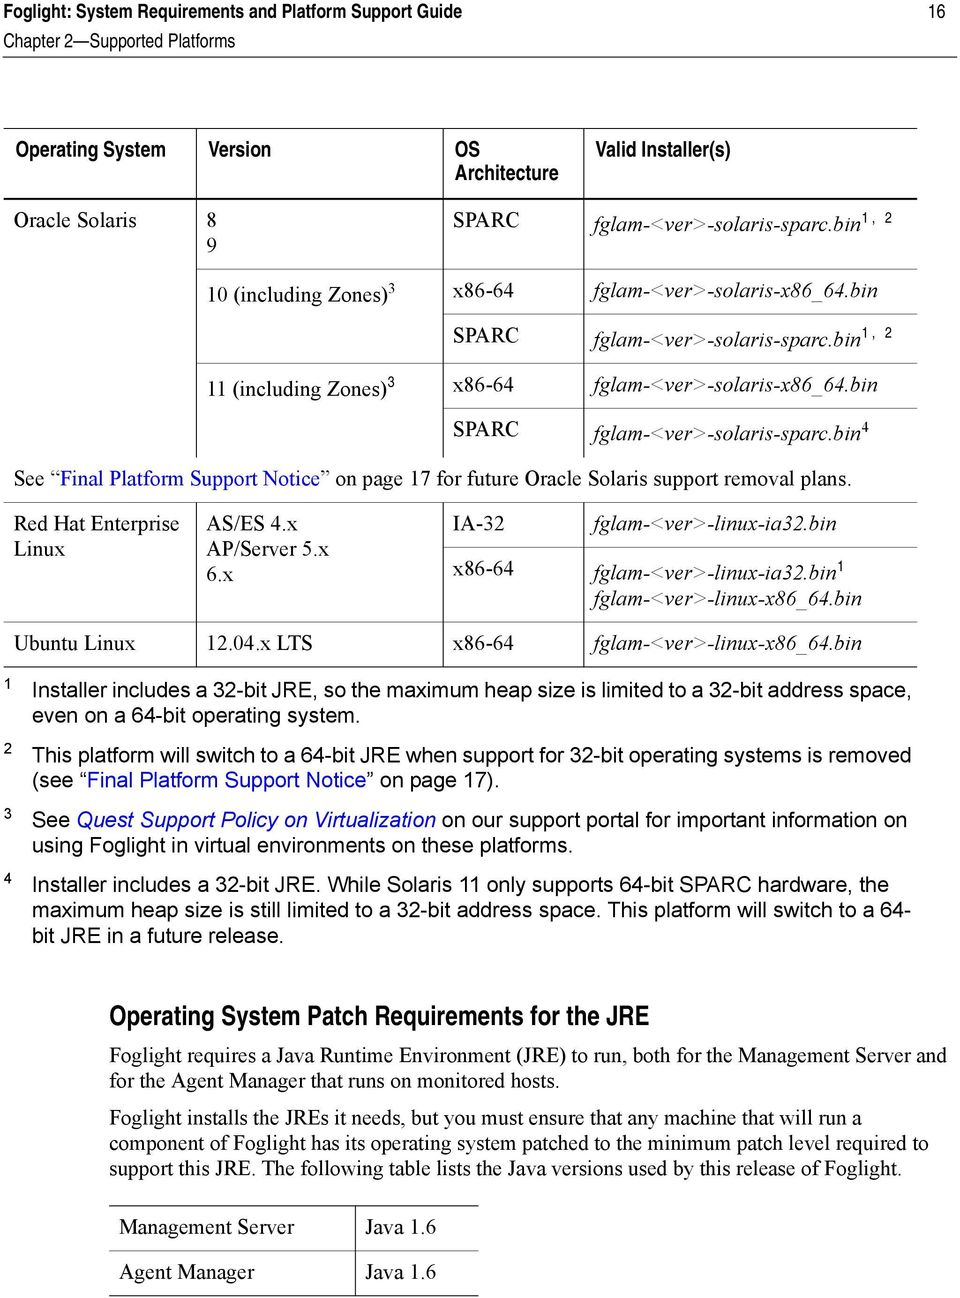 bin SPARC fglam-<ver>-solaris-sparc.bin 4 See Final Platform Support Notice on page 17 for future Oracle Solaris support removal plans. Red Hat Enterprise Linux AS/ES 4.x AP/Server 5.x 6.